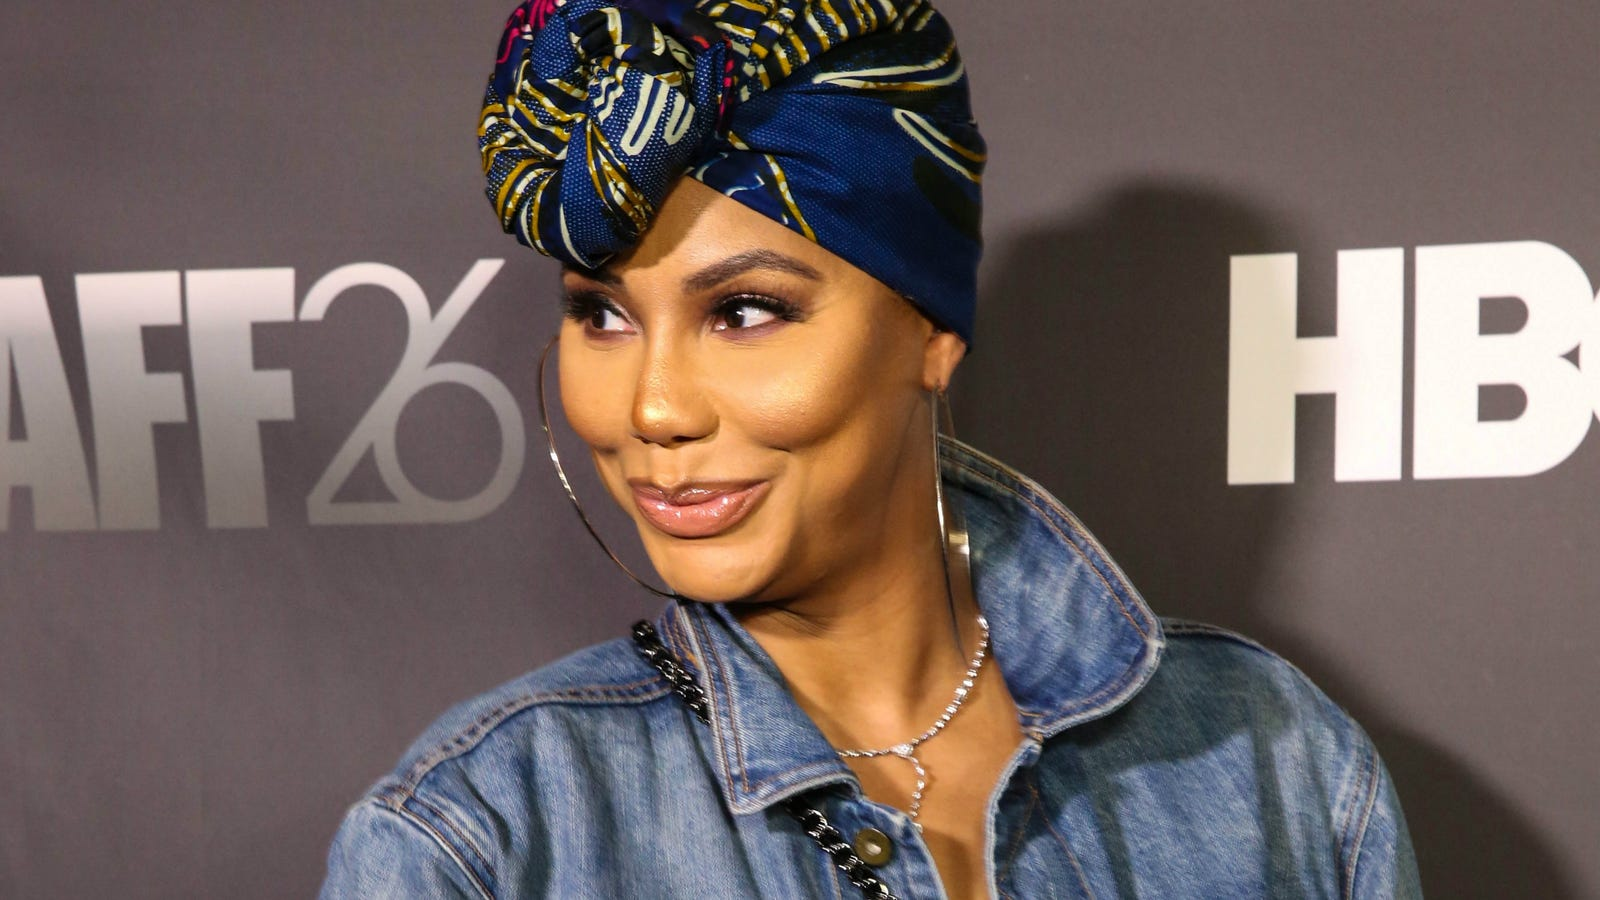 Leave Tamar Alone! People, Can We Stop Equating Hair With Femininity?